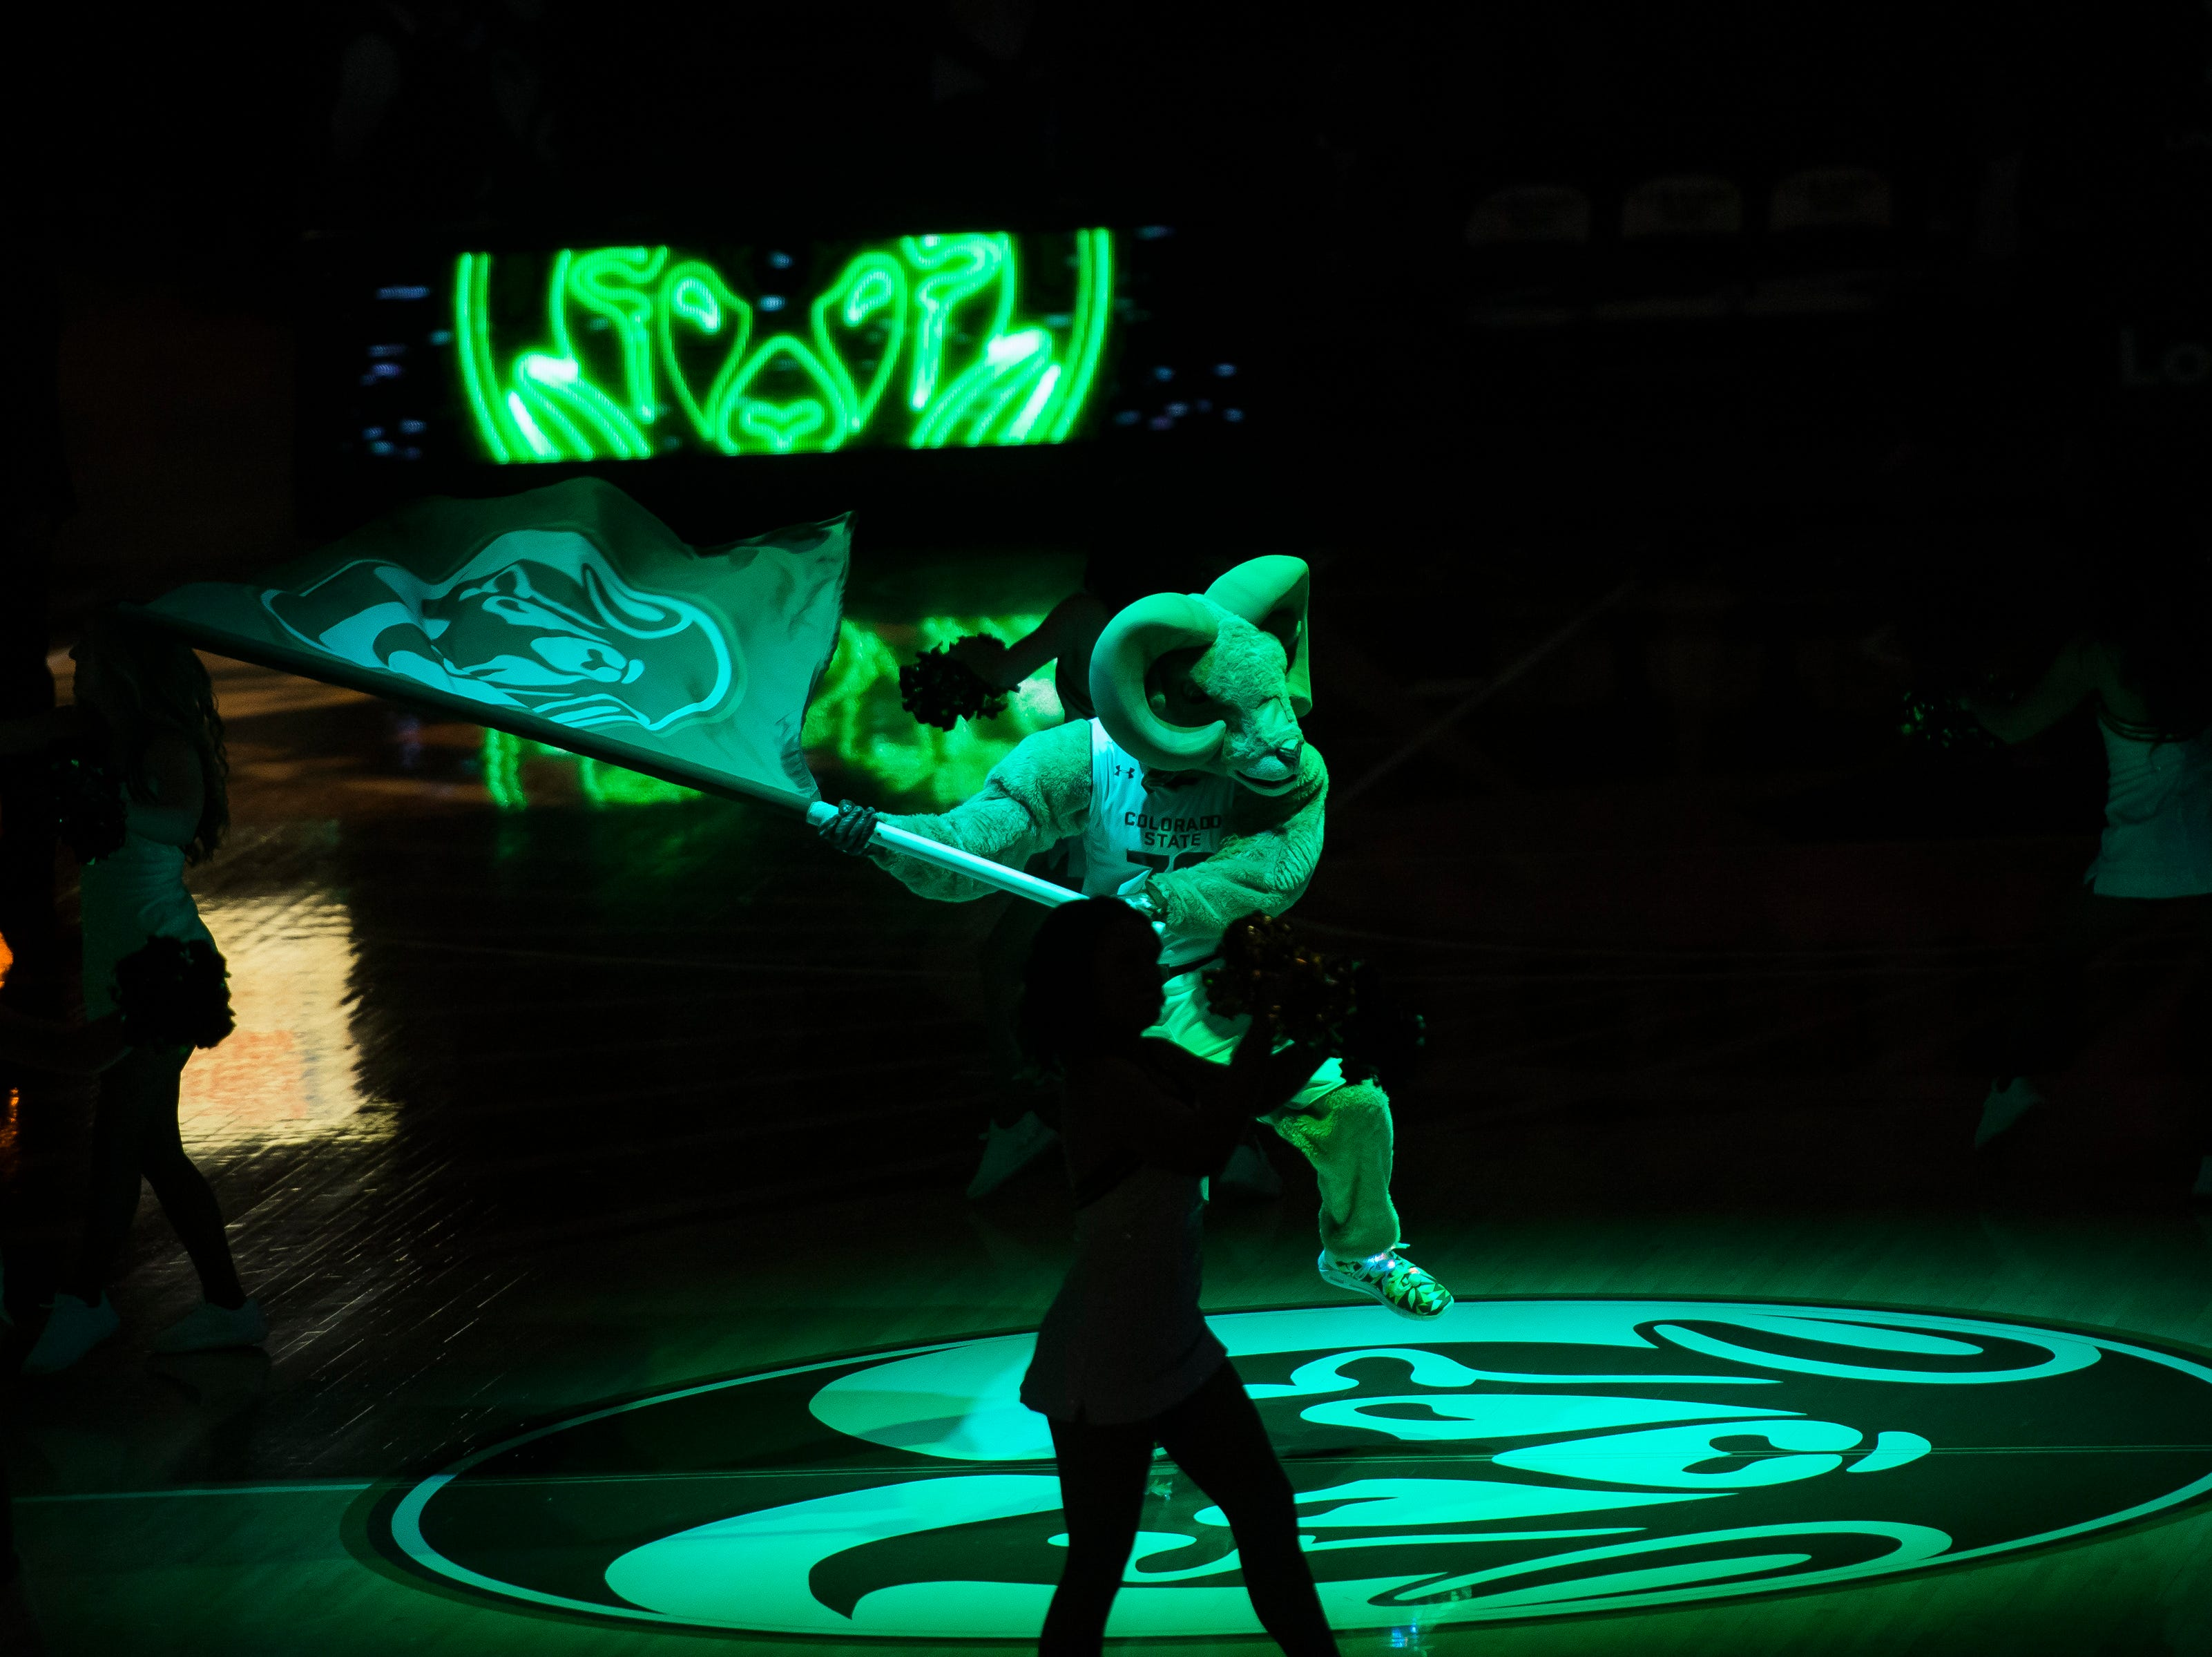 Colorado State University mascot Cam the Ram waves a flag at half-court before a game against Arkansas on Wednesday, Dec. 5, 2018, Moby Arena in Fort Collins, Colo.